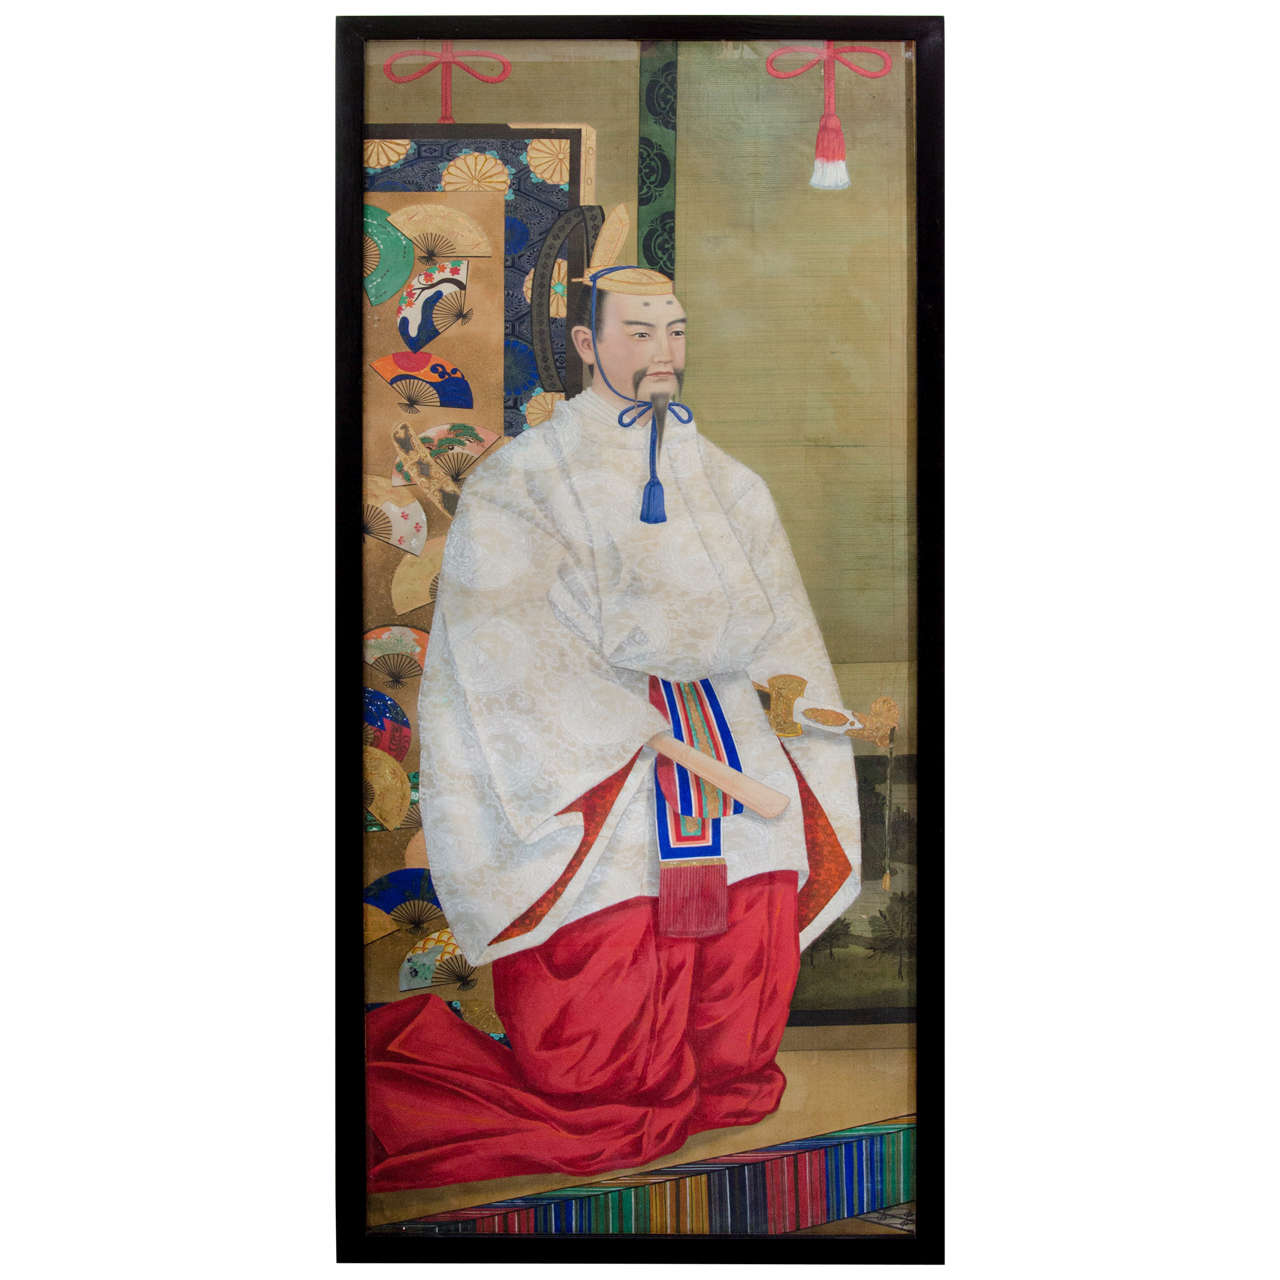 Japanese Imperial Portrait Painting of Man in White and Red